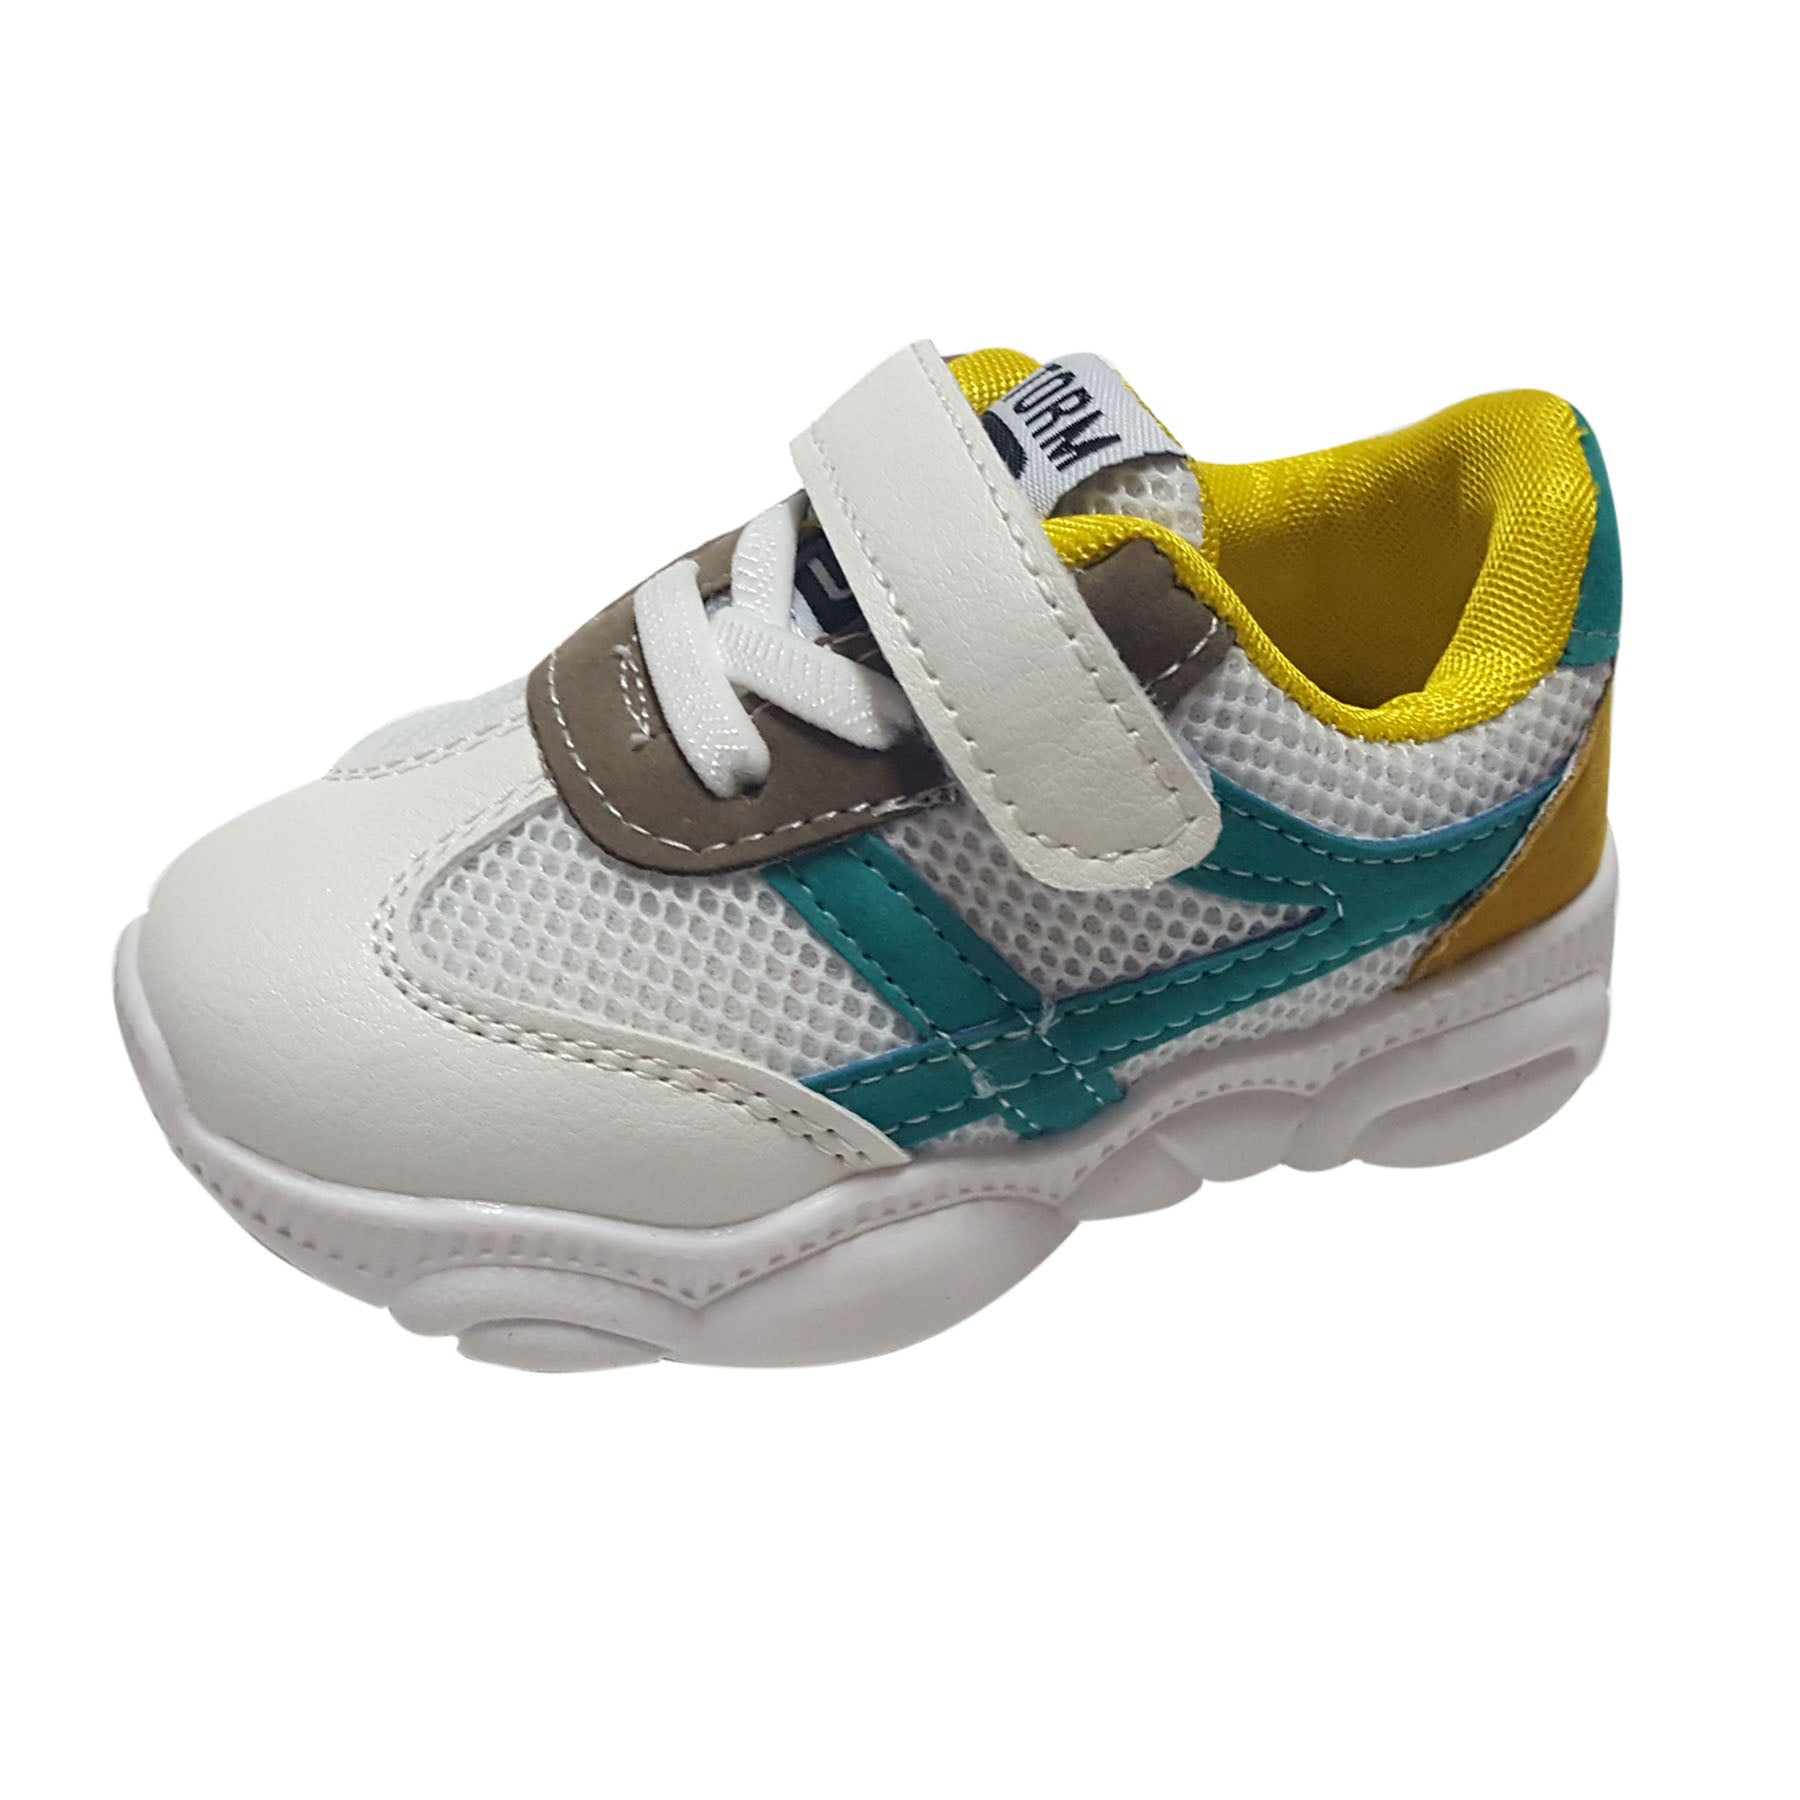 S178 RR Sports Shoes - Byron Green Special Offer